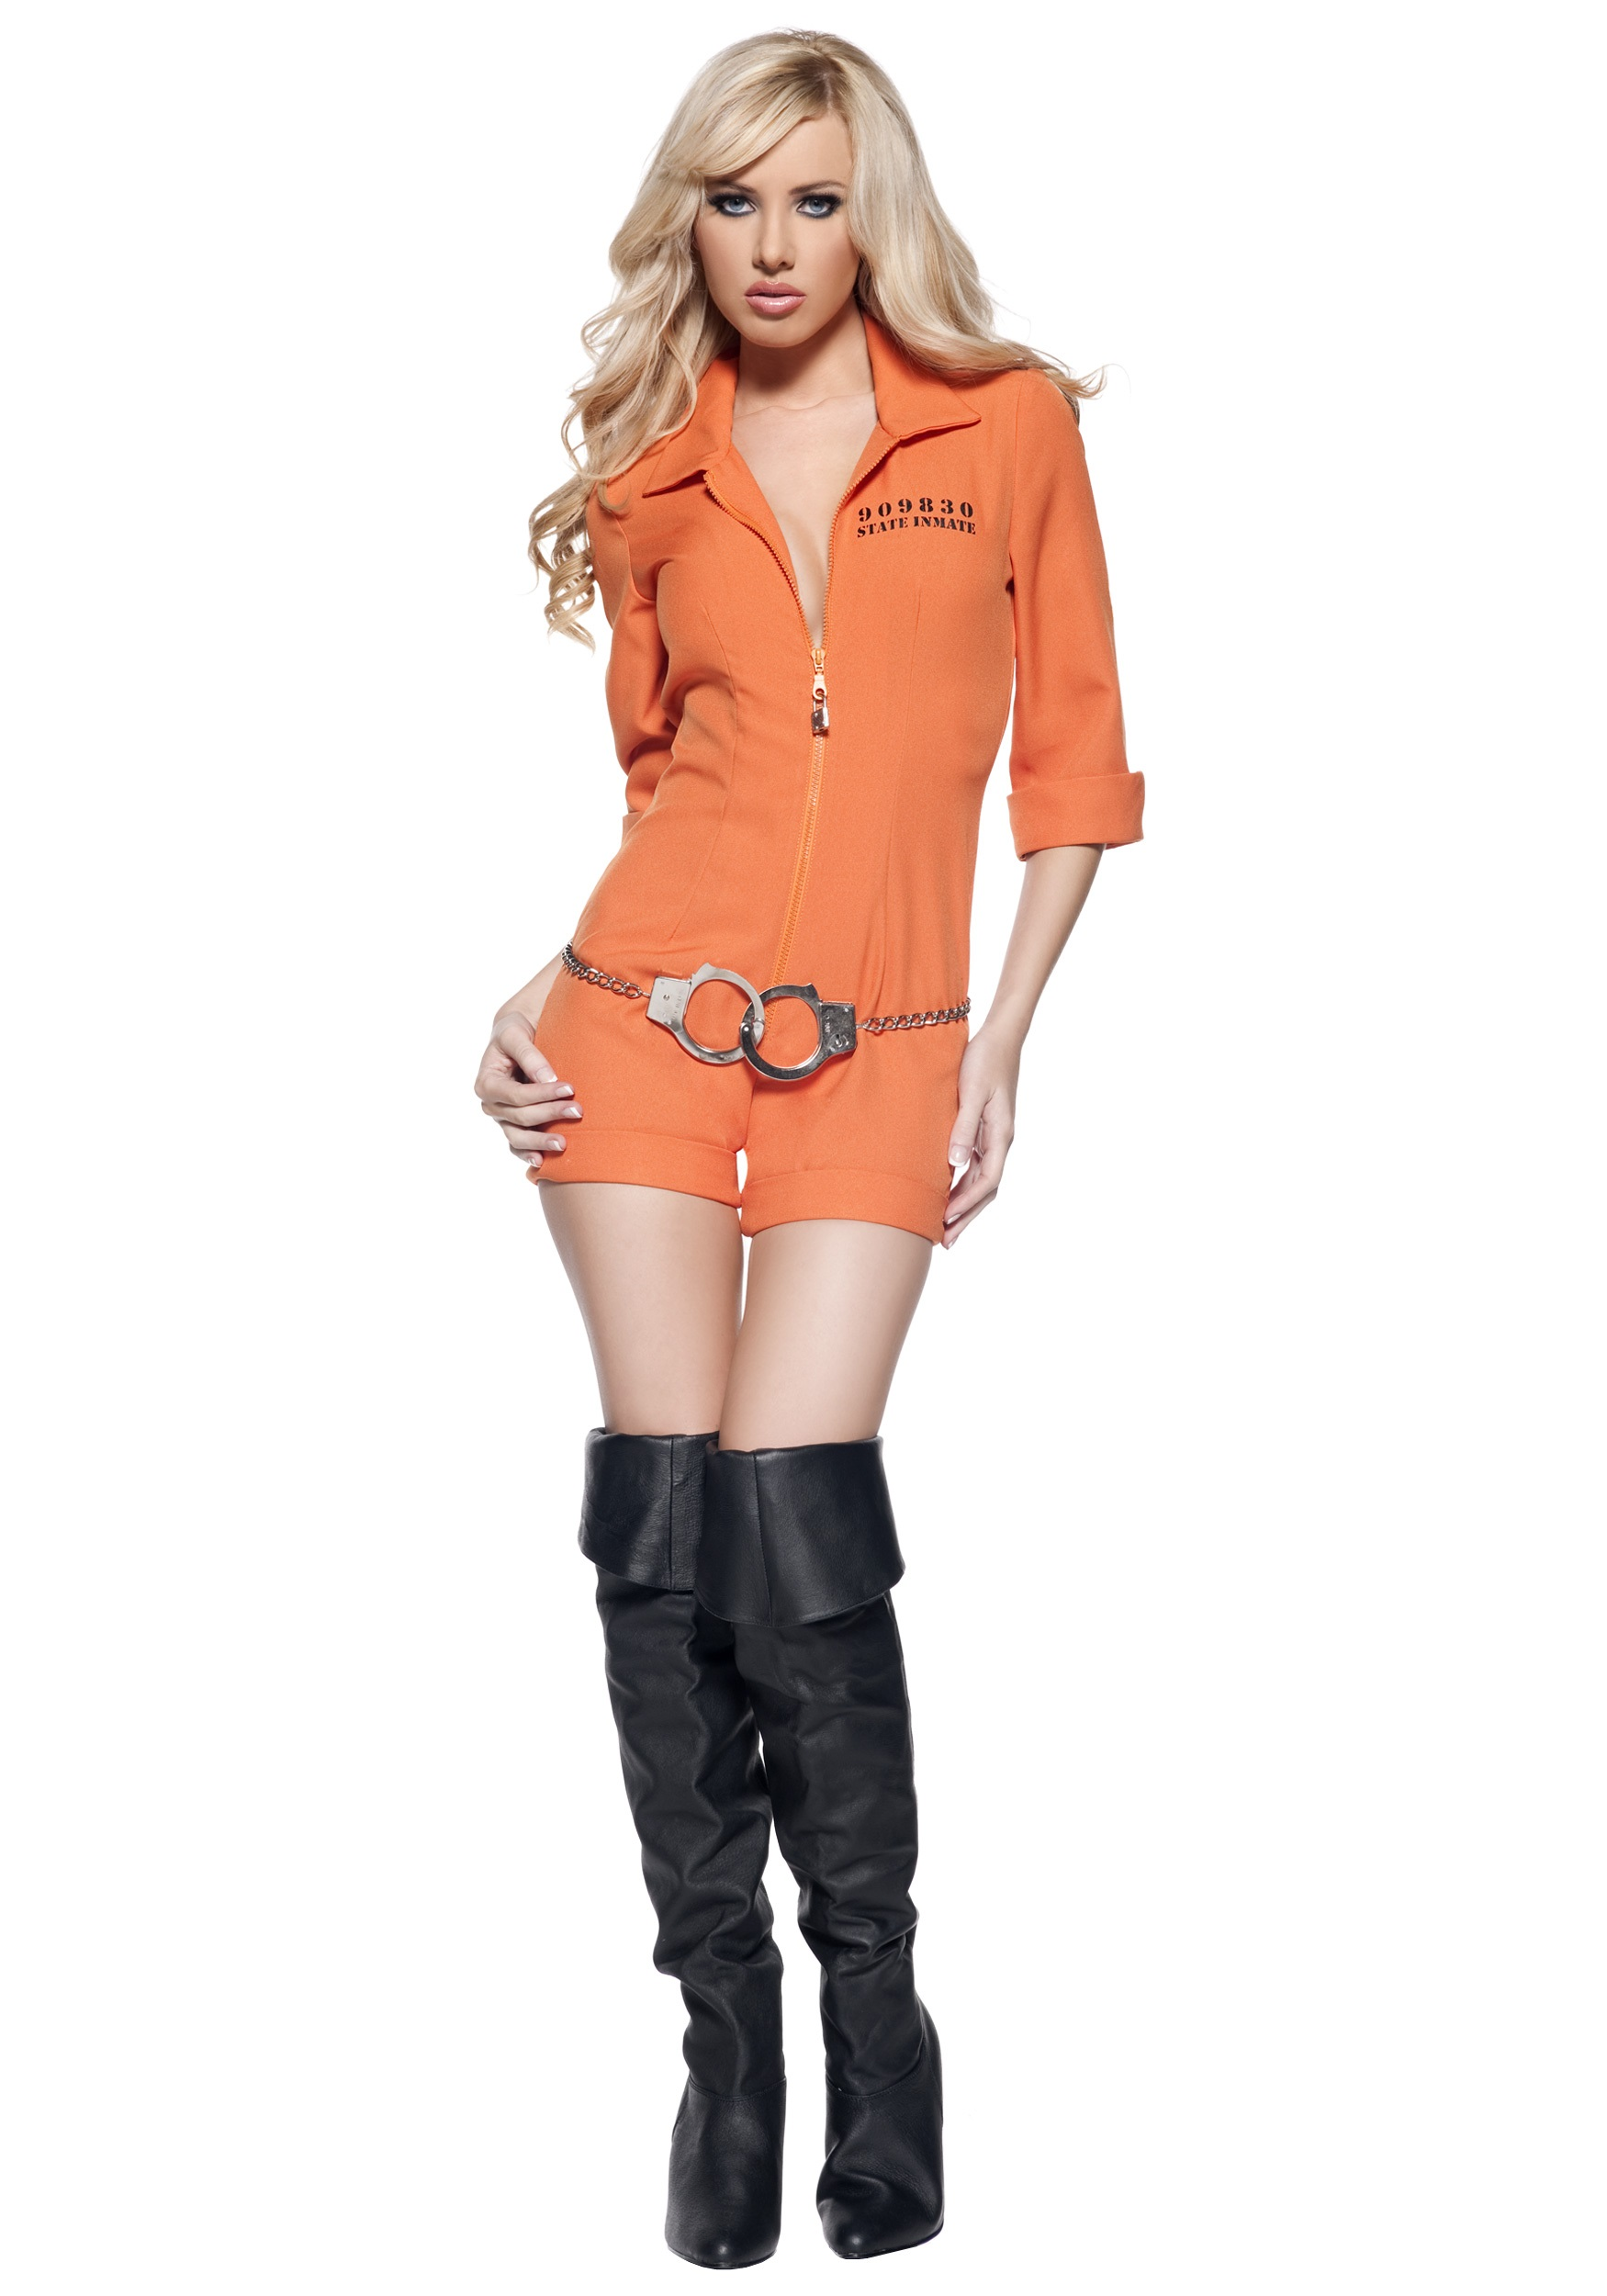 Women's Prison Jumpsuit